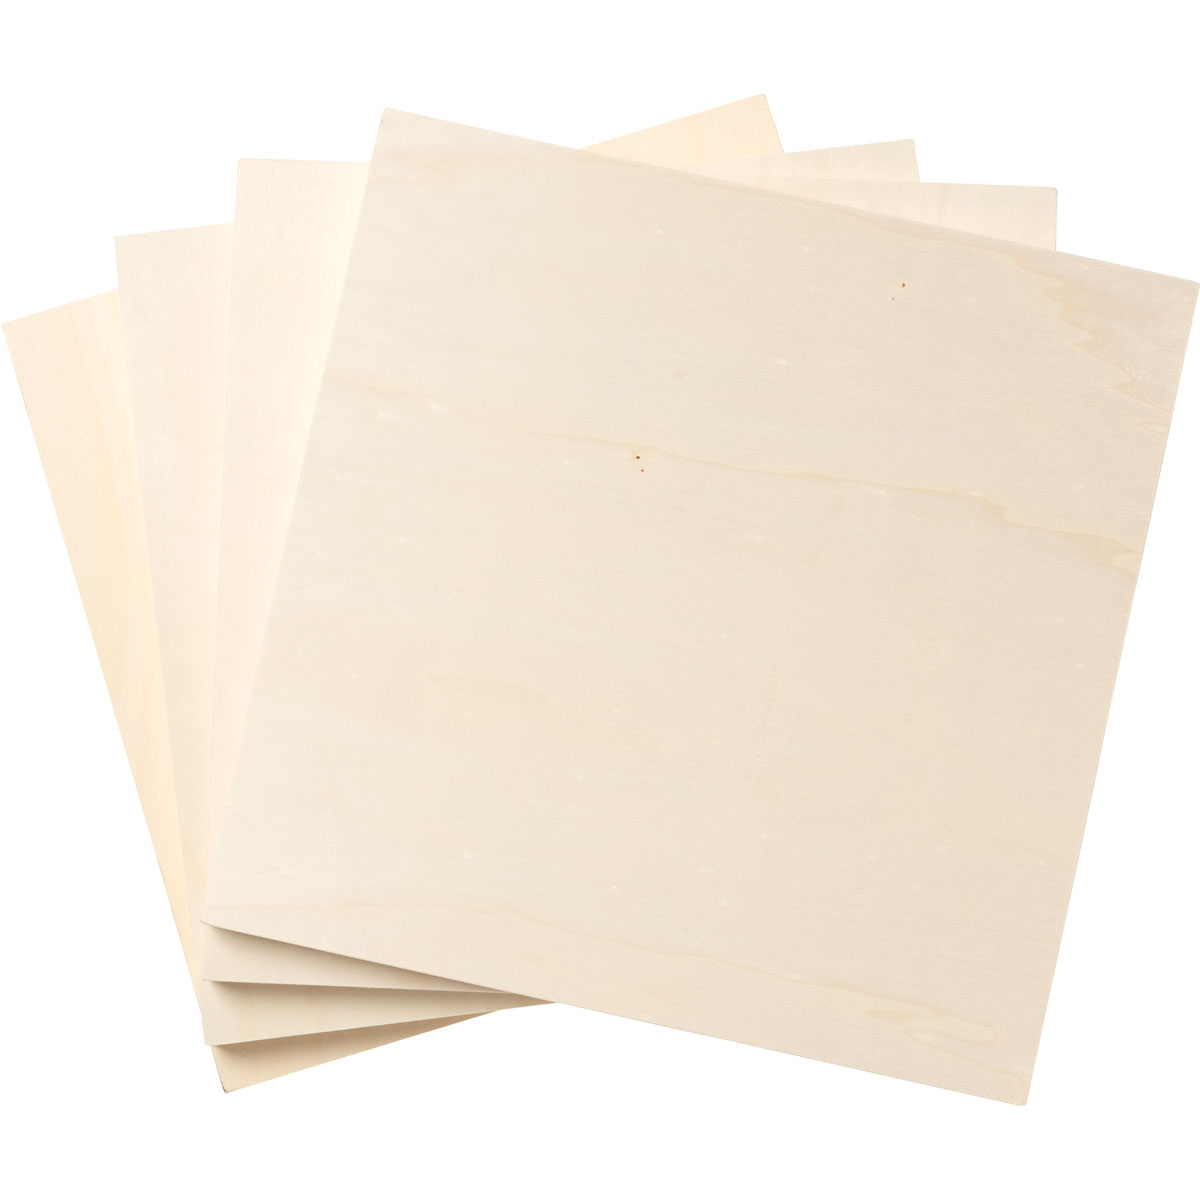 Plaid ® Wood Surfaces - Plywood Panel Bundle, 4 pieces, 10